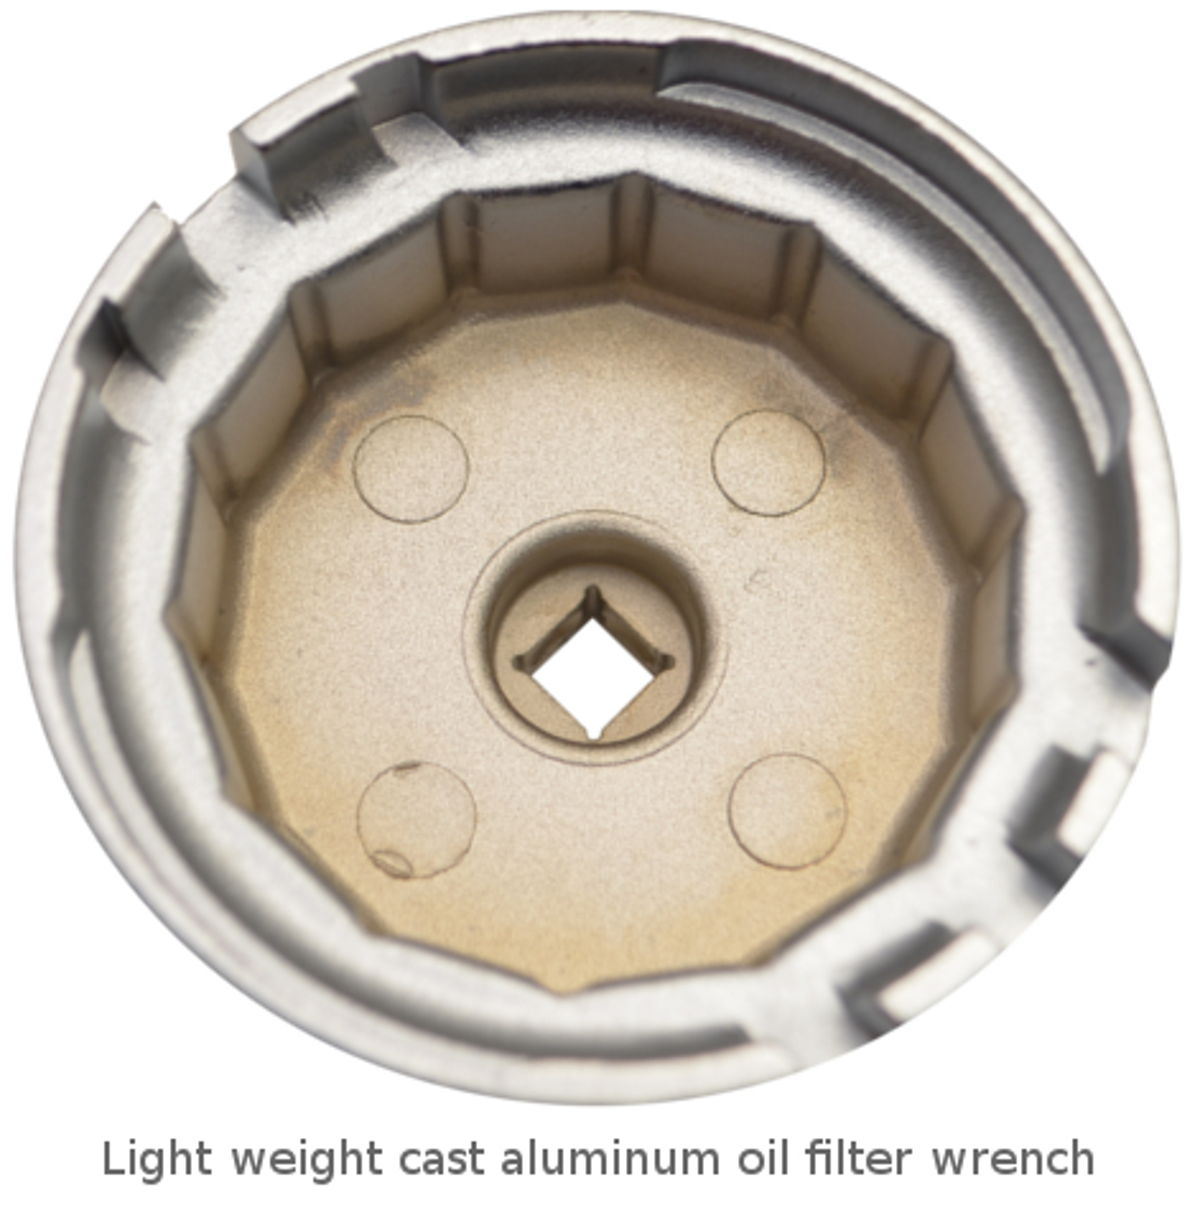 Example of a lightweight aluminum oil filter wrench